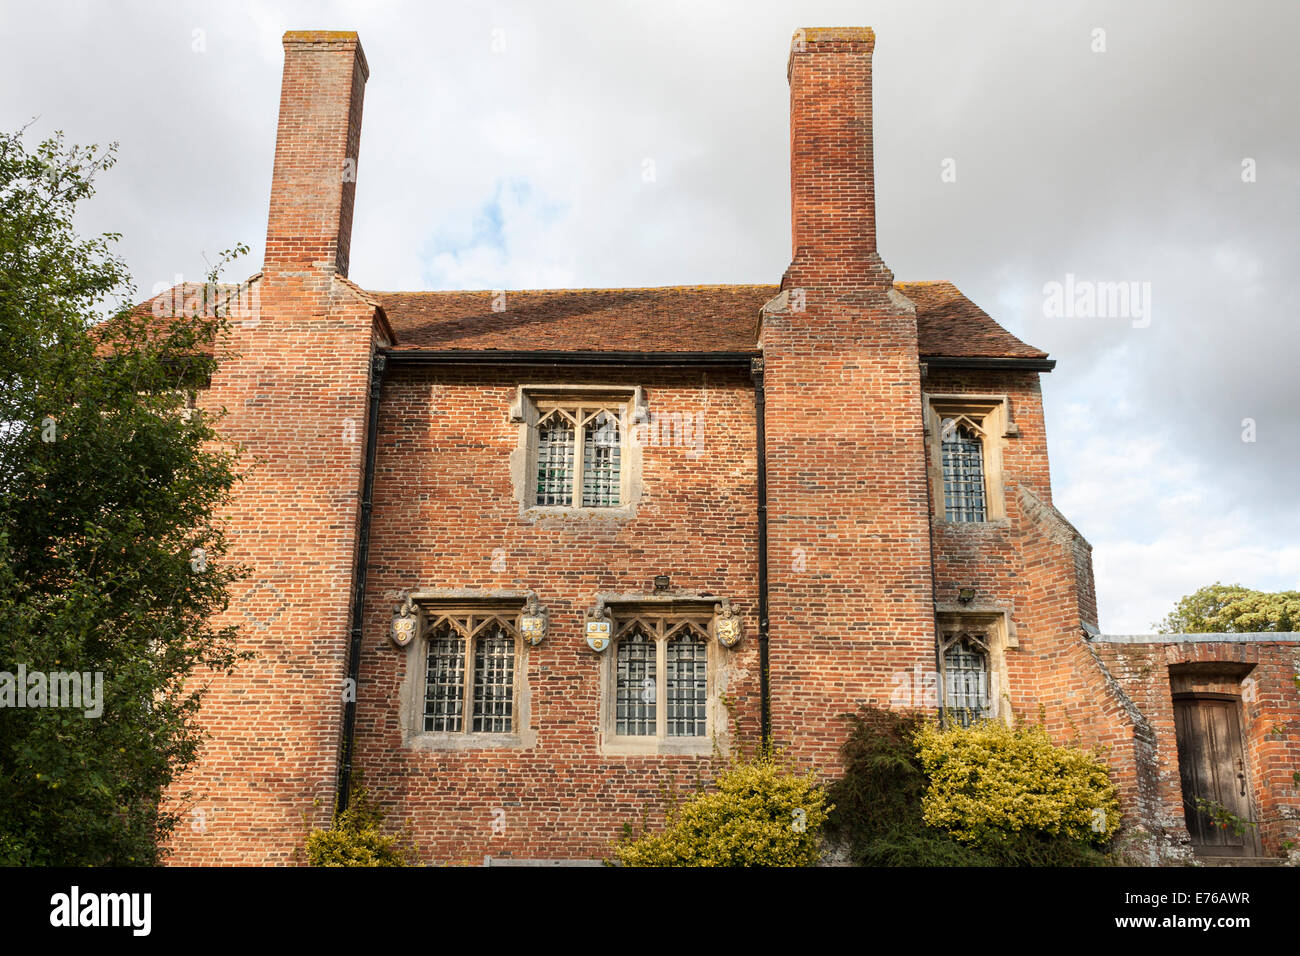 Ewelme School, est. 1437, the oldest school building in the UK still in use as a  school. Ewelme, Oxfordshire, England, - Stock Image